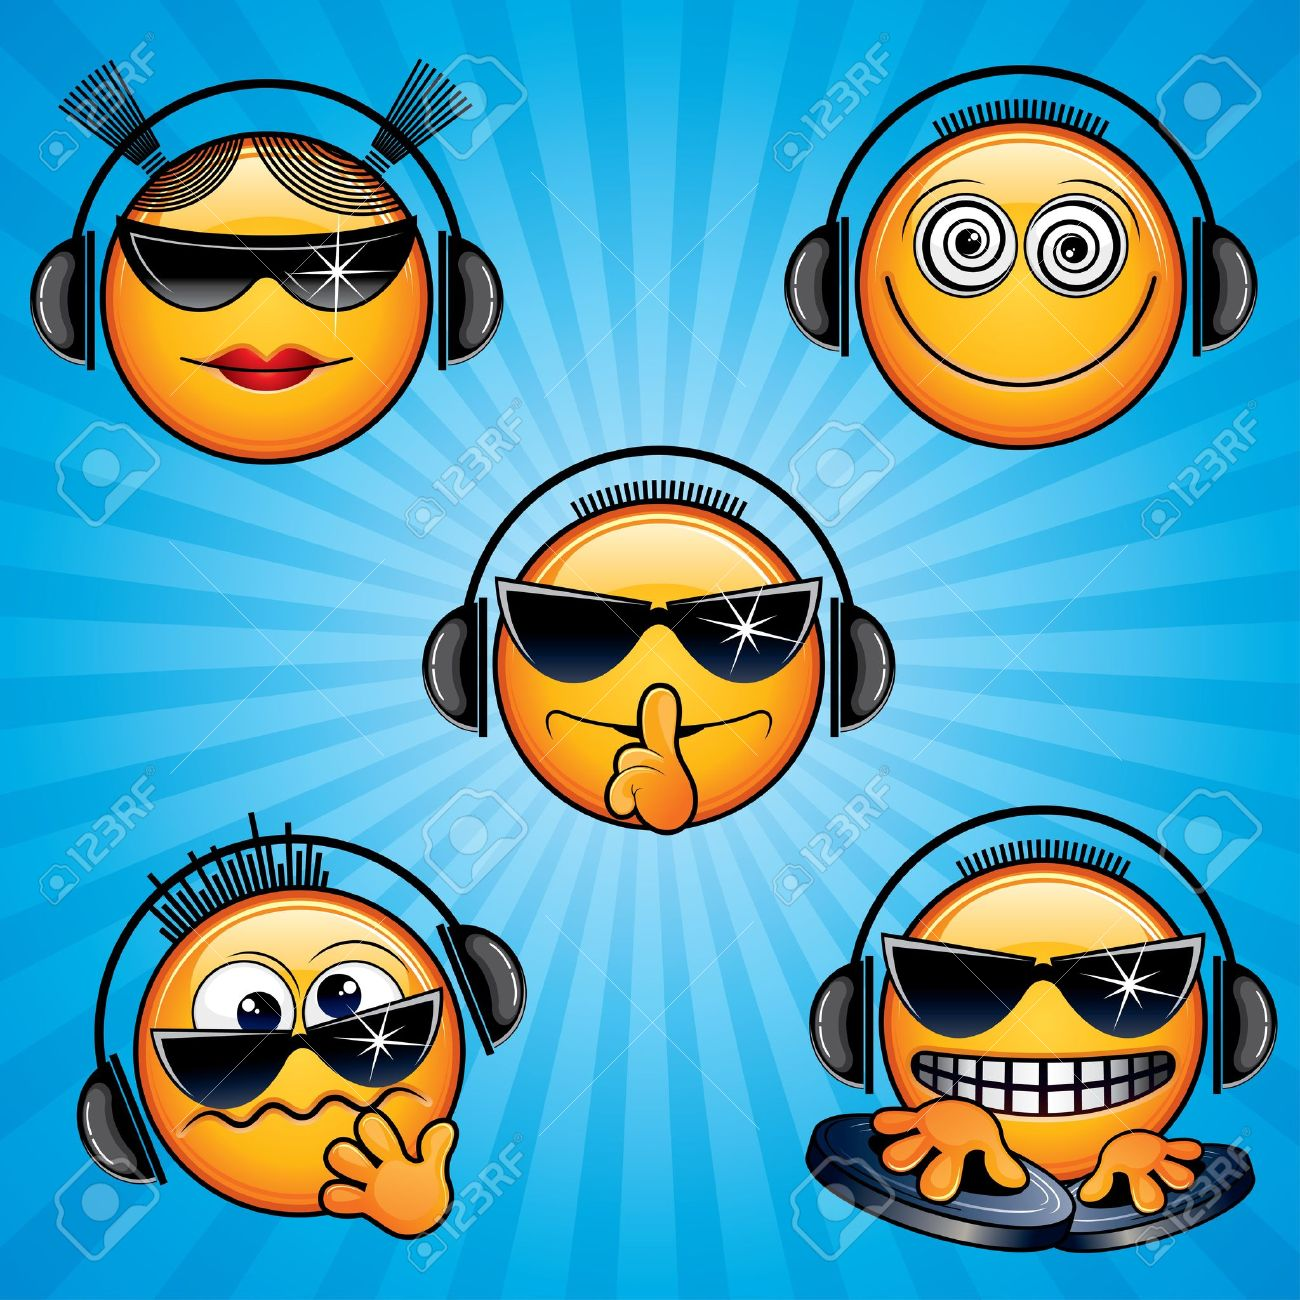 Vector DJ Icons and Smileys Stock Vector - 10725164